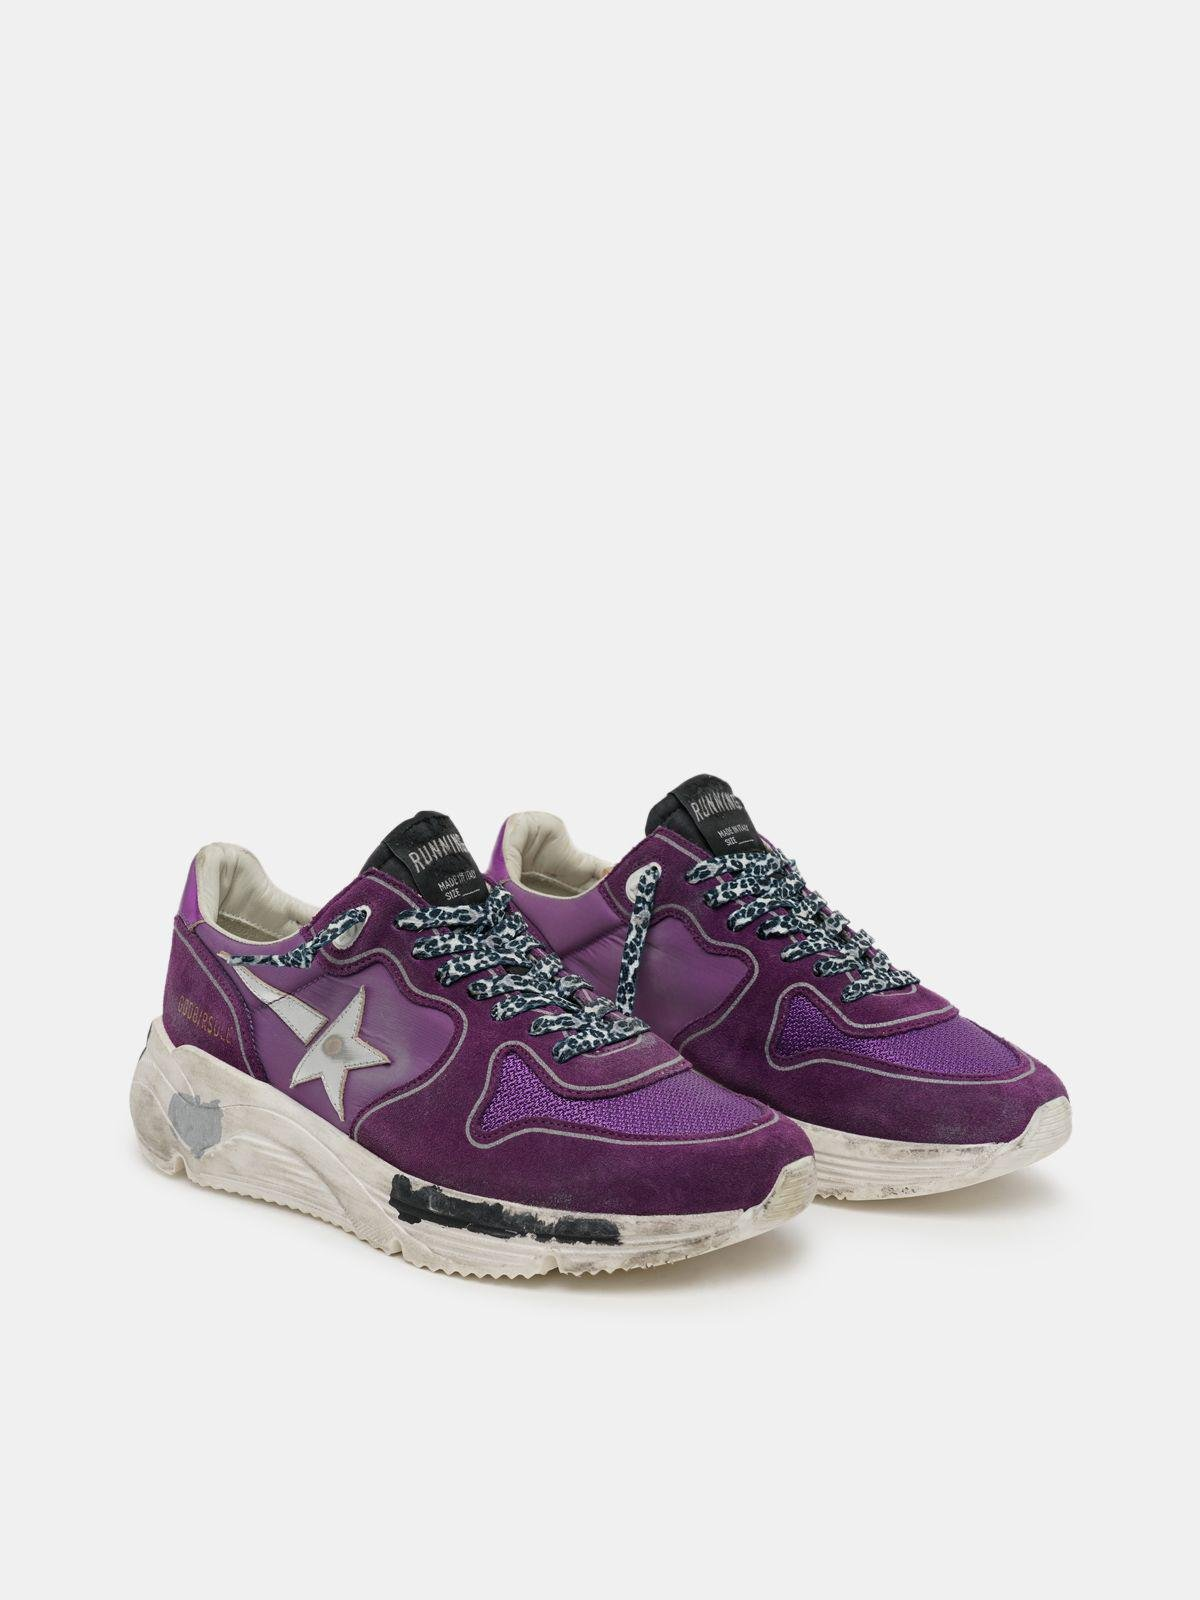 Suede, leather and mesh Running Sole sneakers with metallic purple heel tab 2